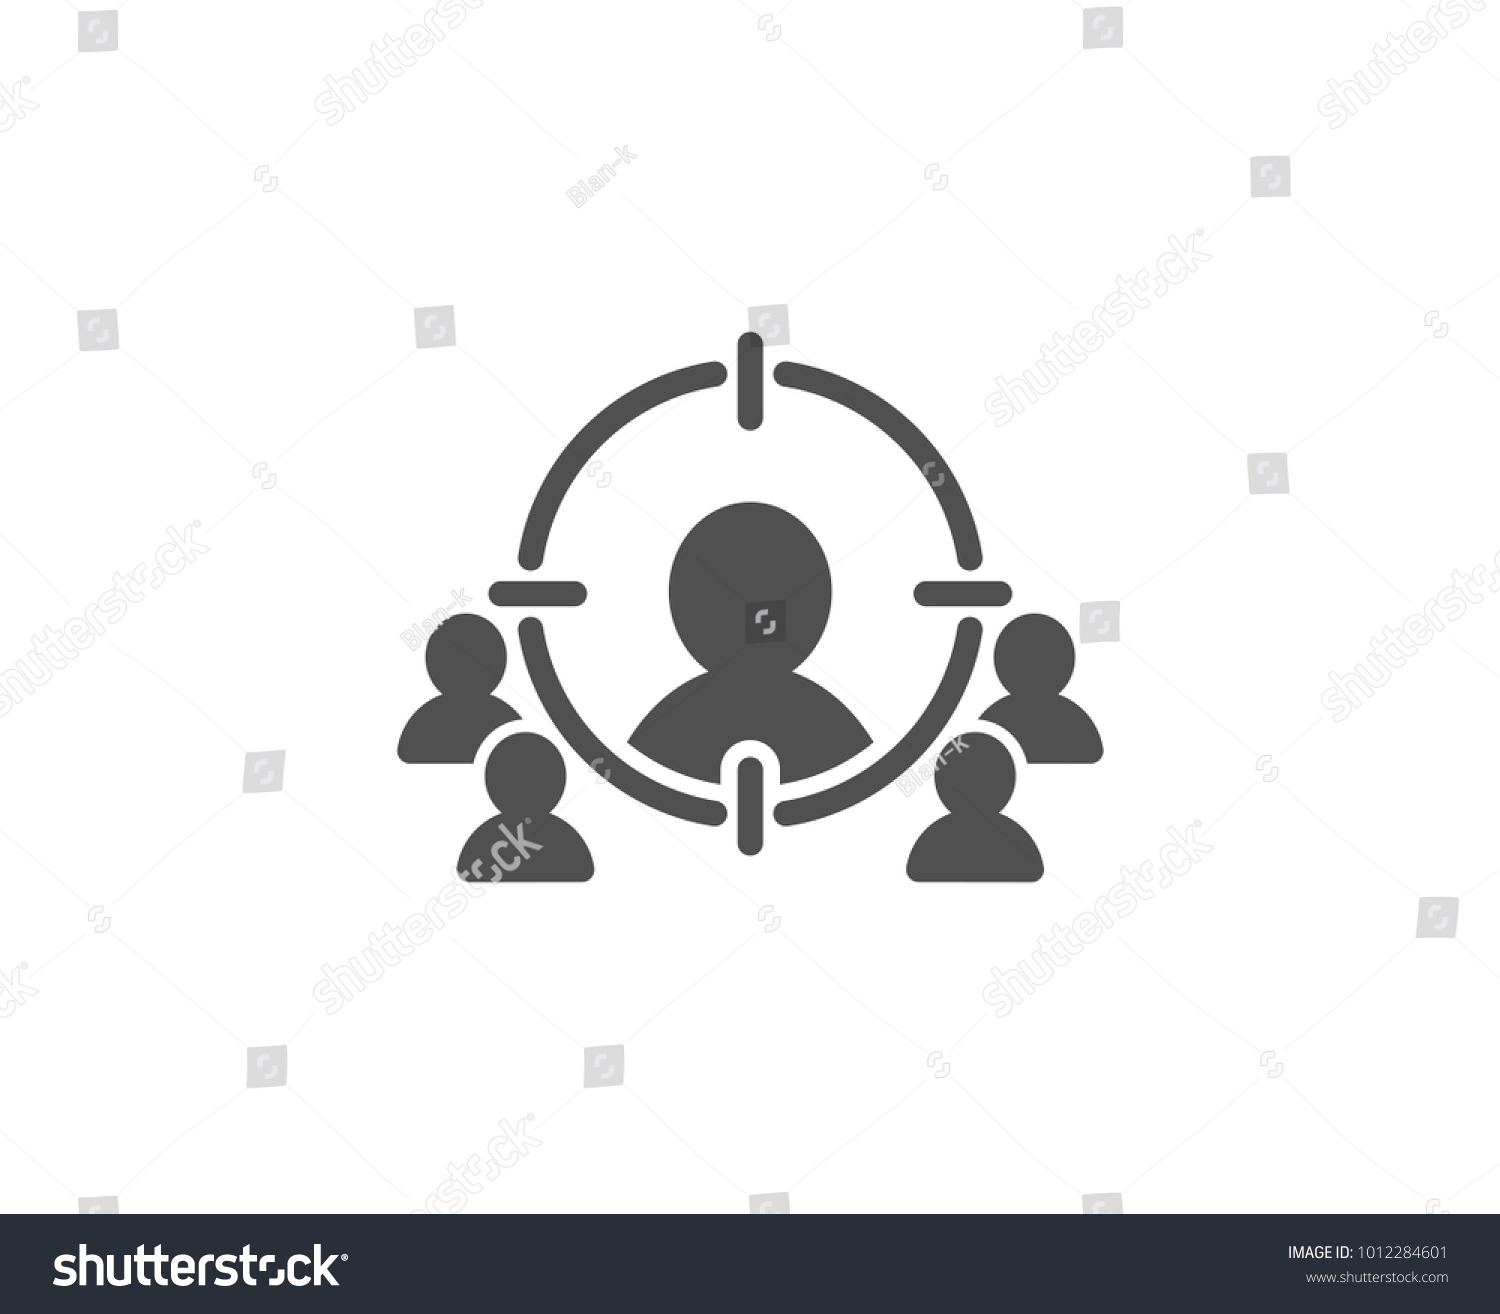 Business targeting simple icon marketing target stock vector business targeting simple icon marketing target stock vector 1012284601 shutterstock buycottarizona Image collections